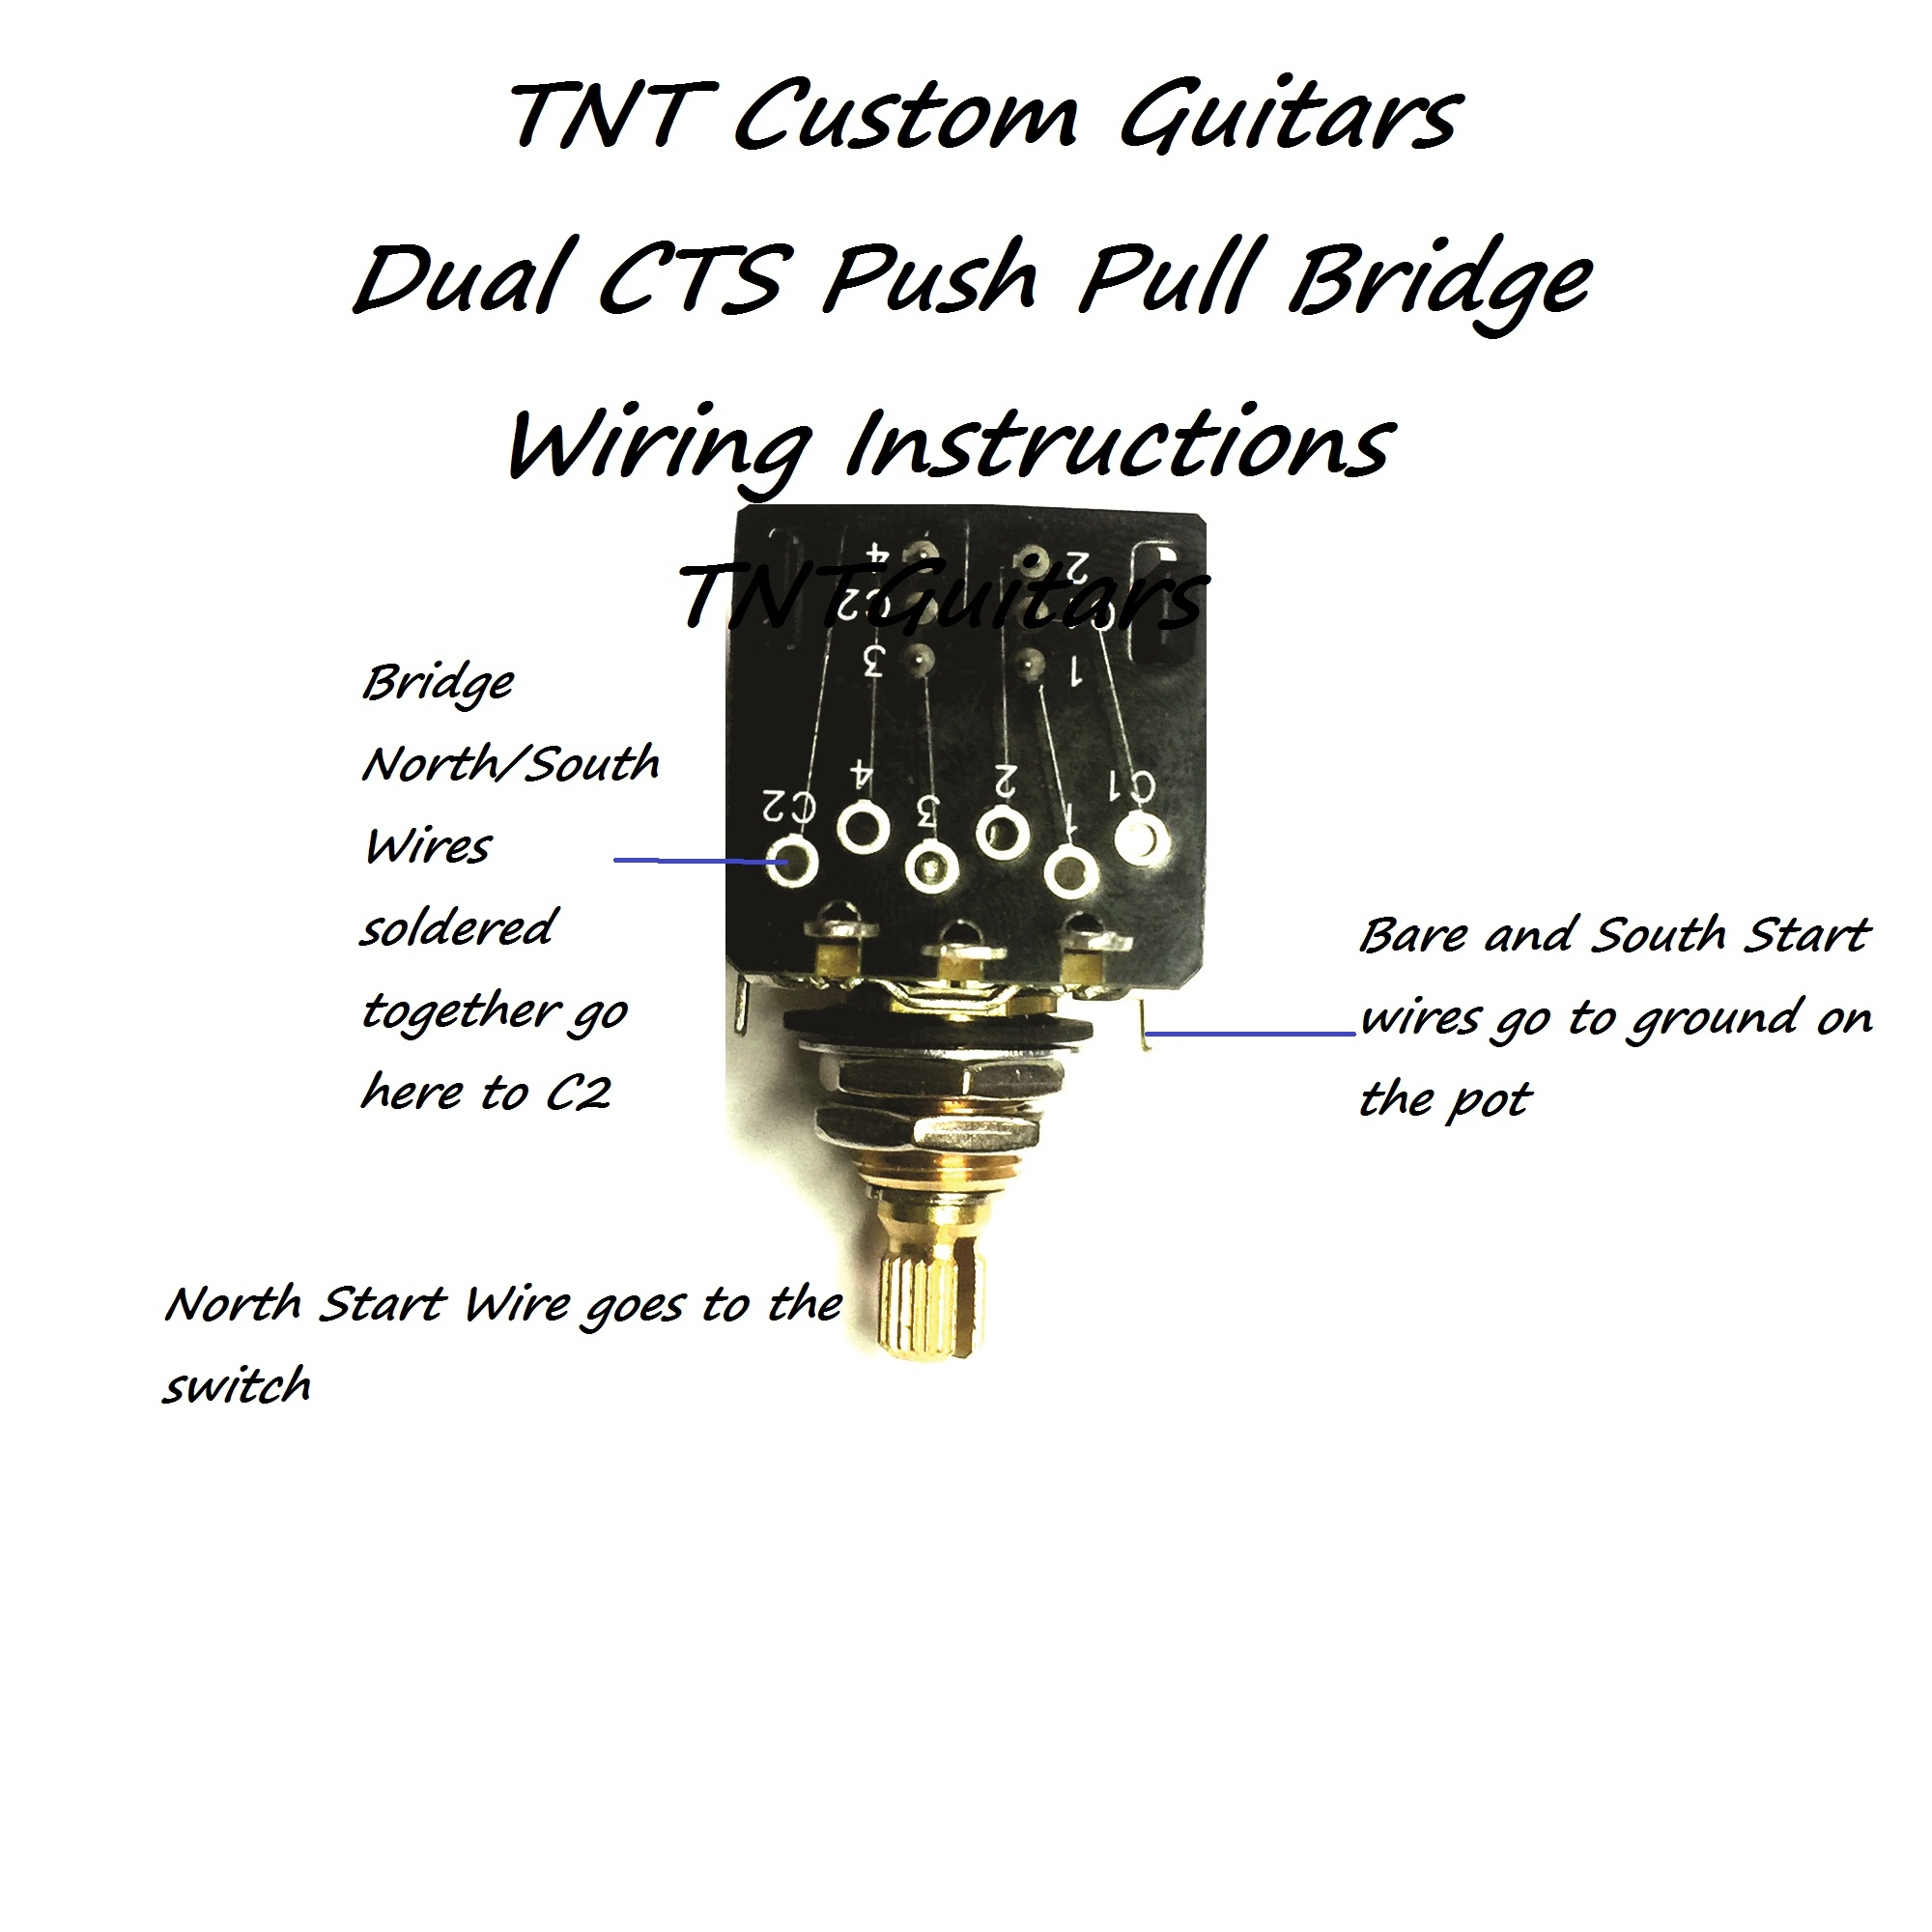 Push Pull B250k Potentiometer Wiring Diagram Another Blog About Kz440 Harness 1v2t Prewired 2 Pickup Cts Dual Coil Cut Toggle Rh Dragonfireguitars Com